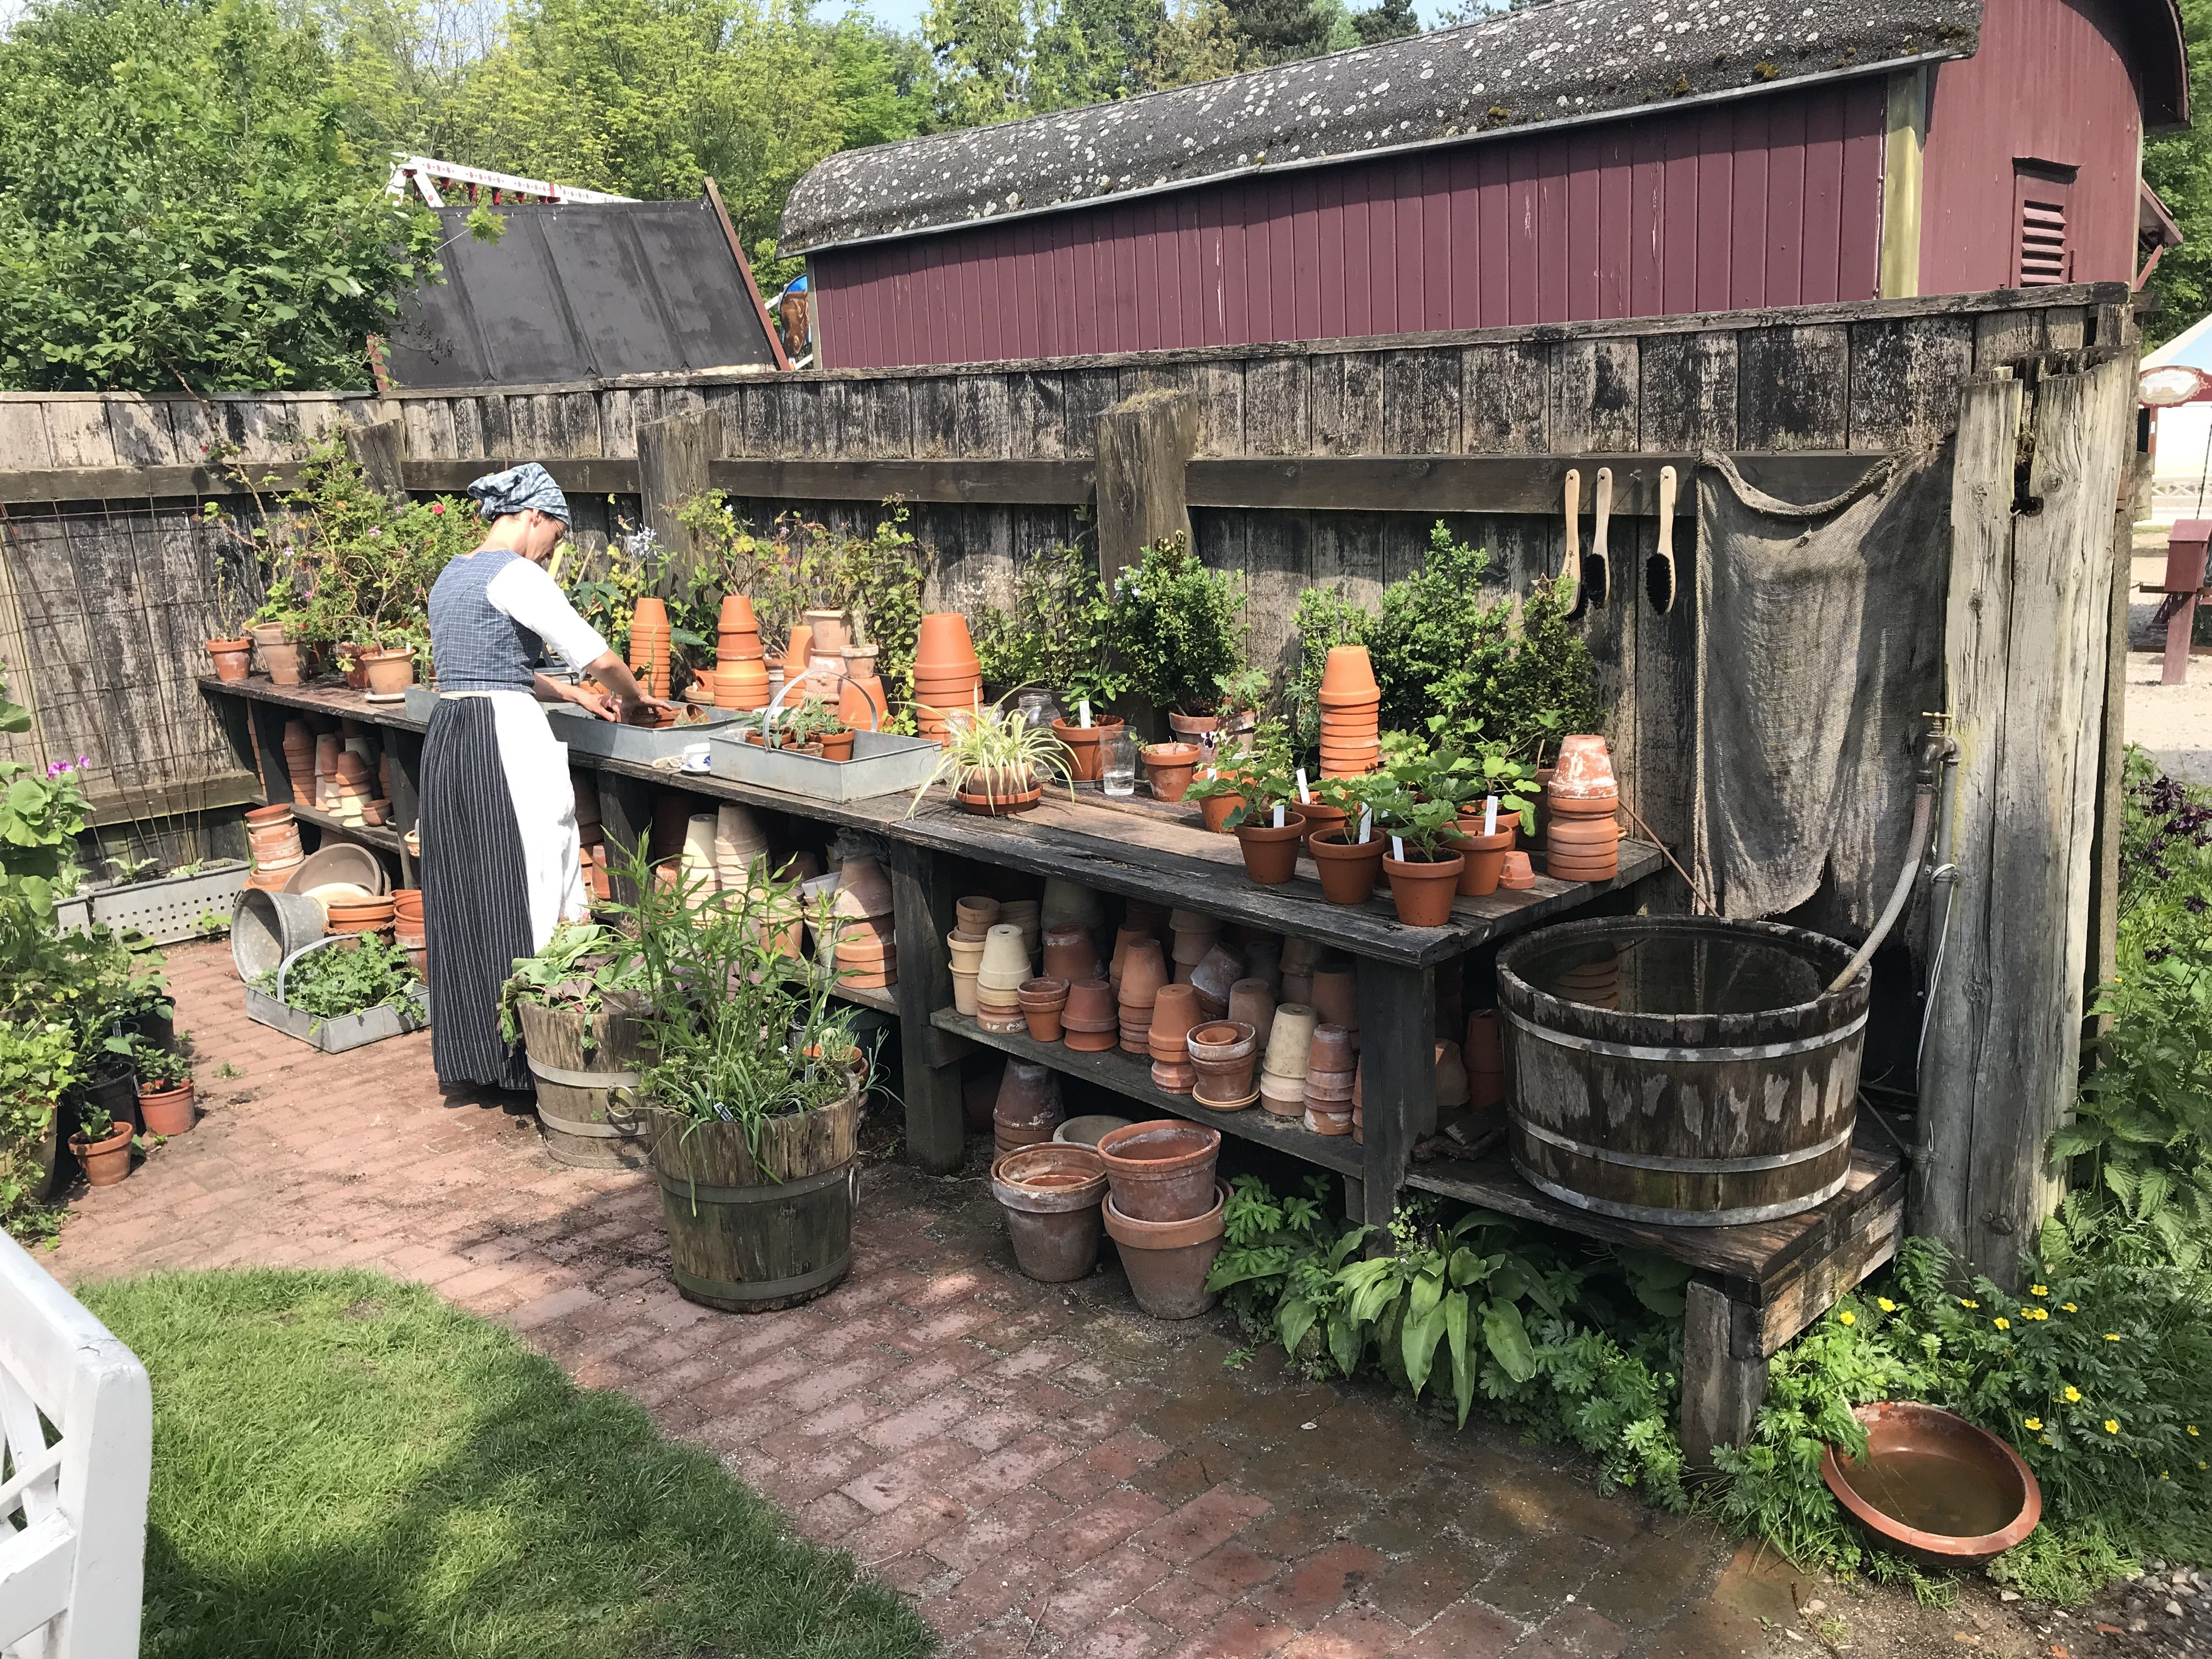 Nice Classic Potting Table At Den Gamle By Aarhus Denmark A National Open Air Museum Of Urban Histo Country Gardening Herbaceous Perennials Potting Table